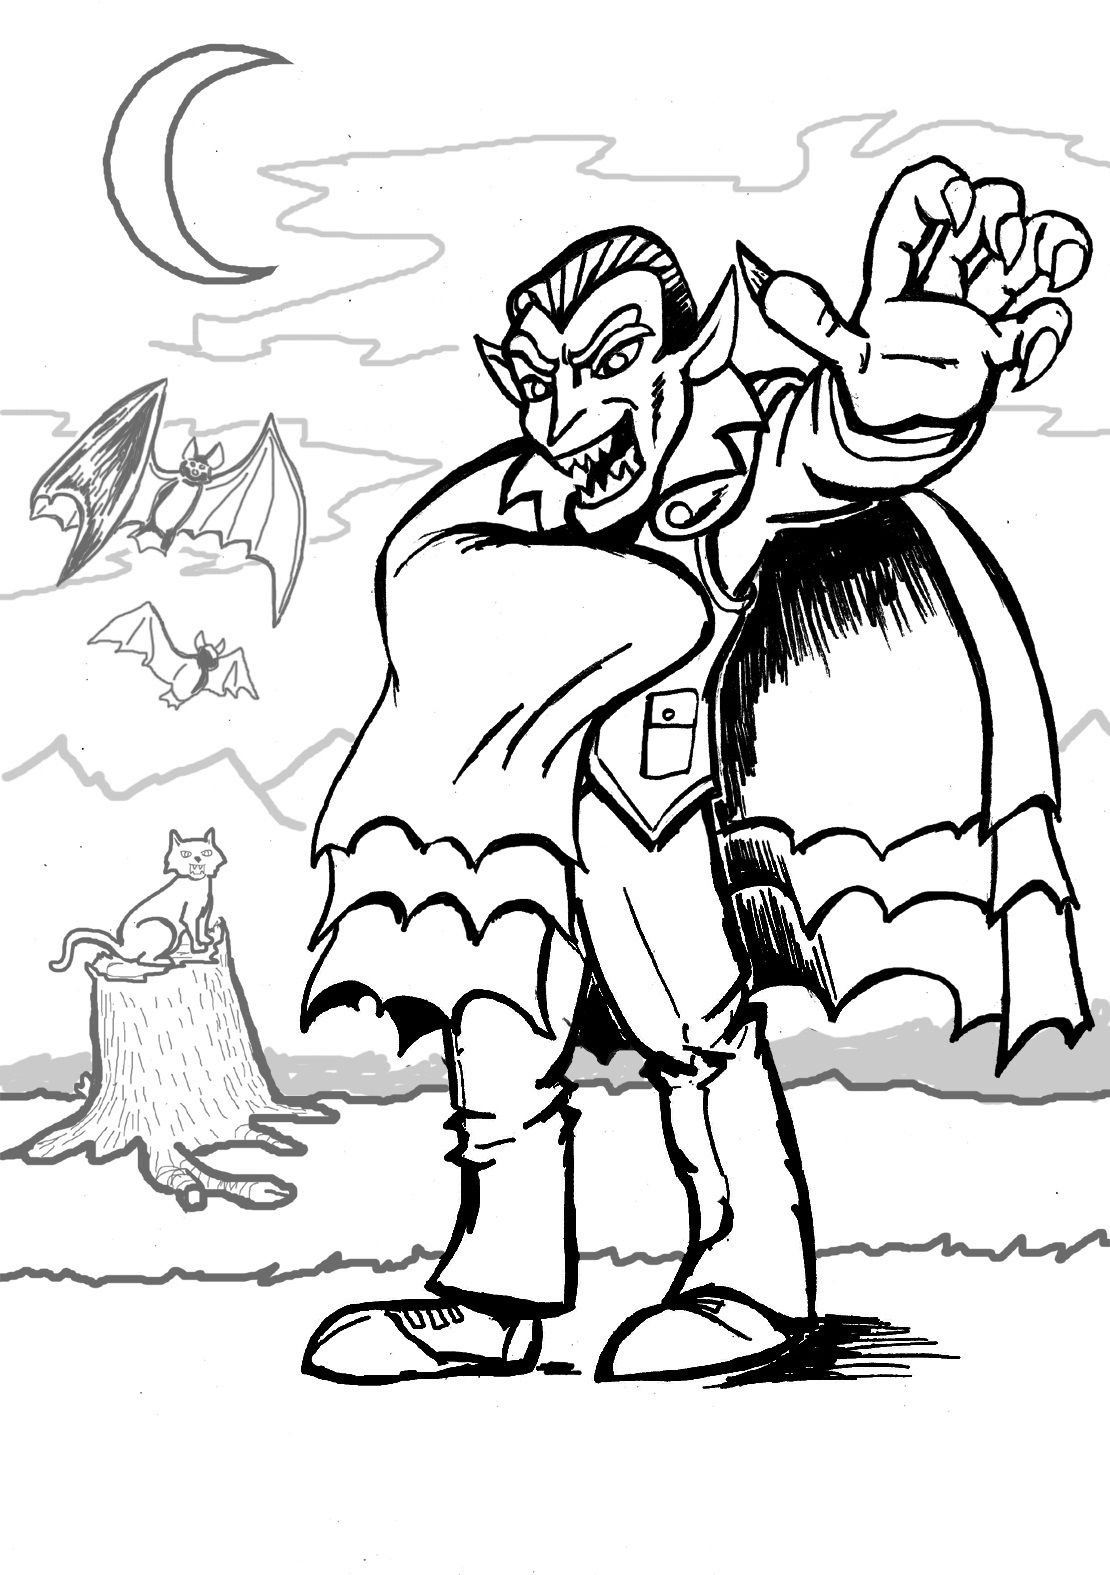 Vampire Printable Coloring Pages Cute Coloring Pages Disney Princess Coloring Pages Abstract Coloring Pages